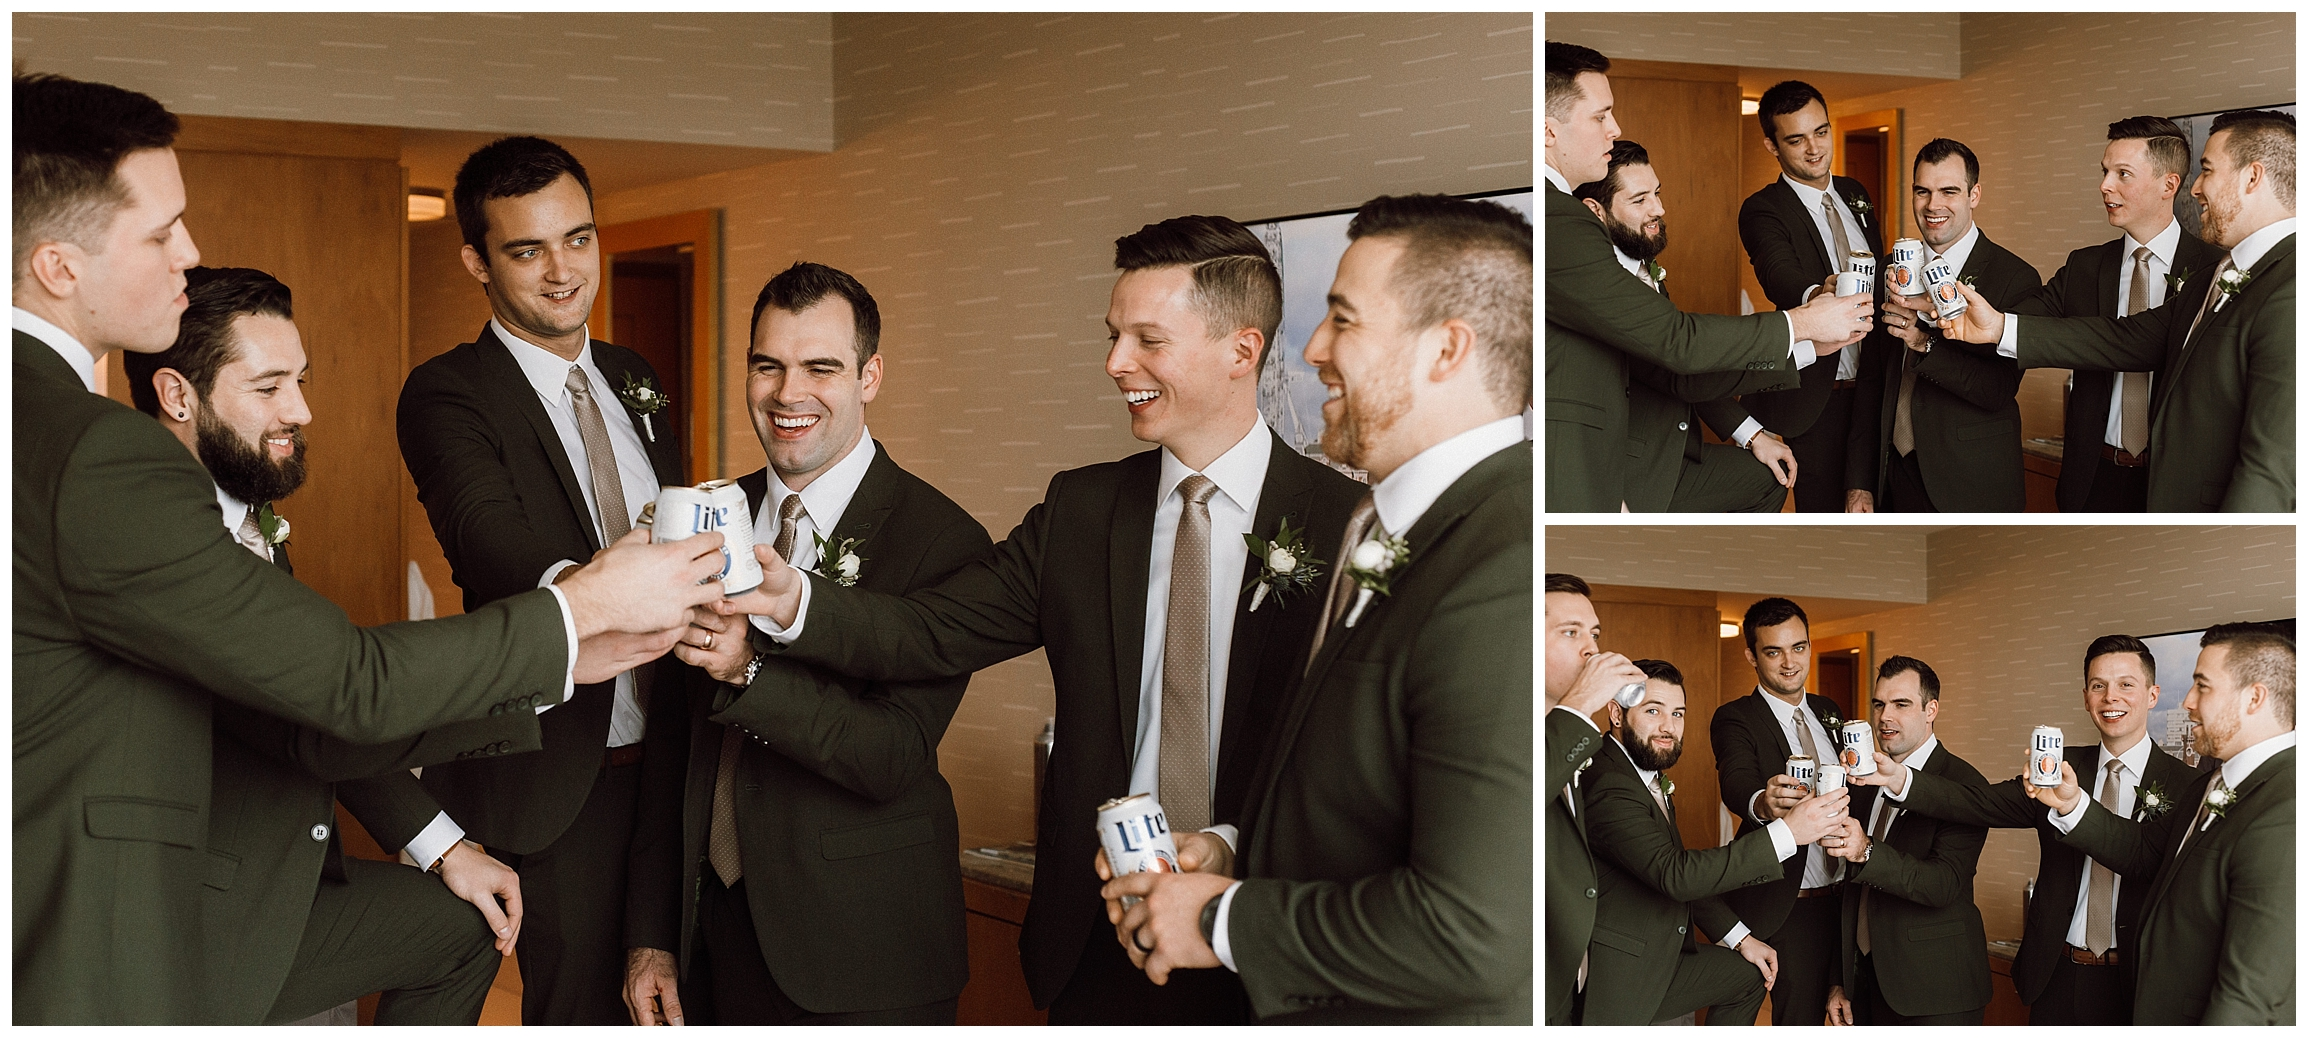 Katie_Vonasek_Photography_Ford_Piquette_Plant_Wedding_Detroit17.JPG